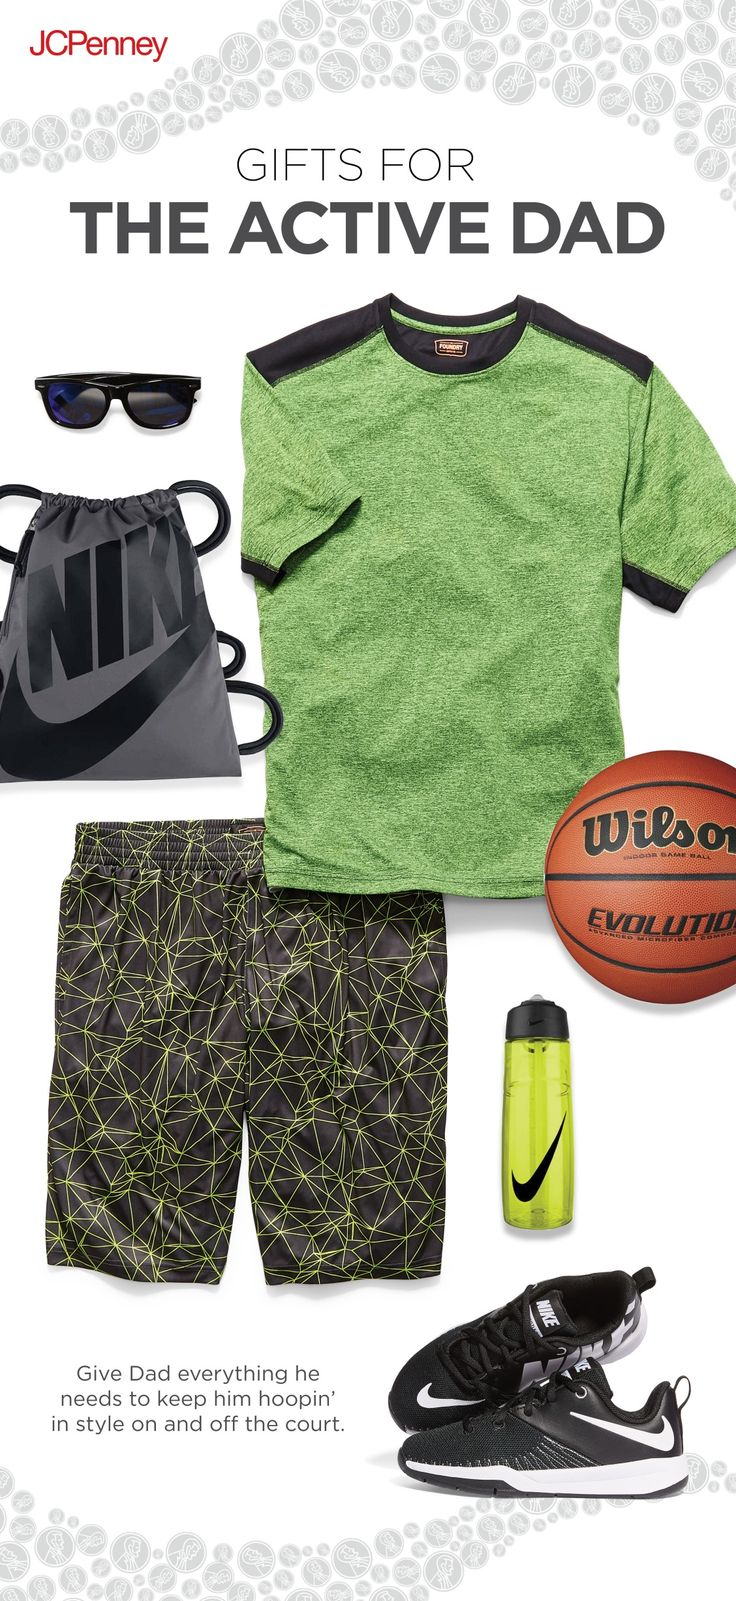 Whoa, that Dad is on the move! Find great gifts at great prices for Father's Day from JCPenney! Give him the latest Nike shoes or new activewear shorts and shirts that match his love for sports.